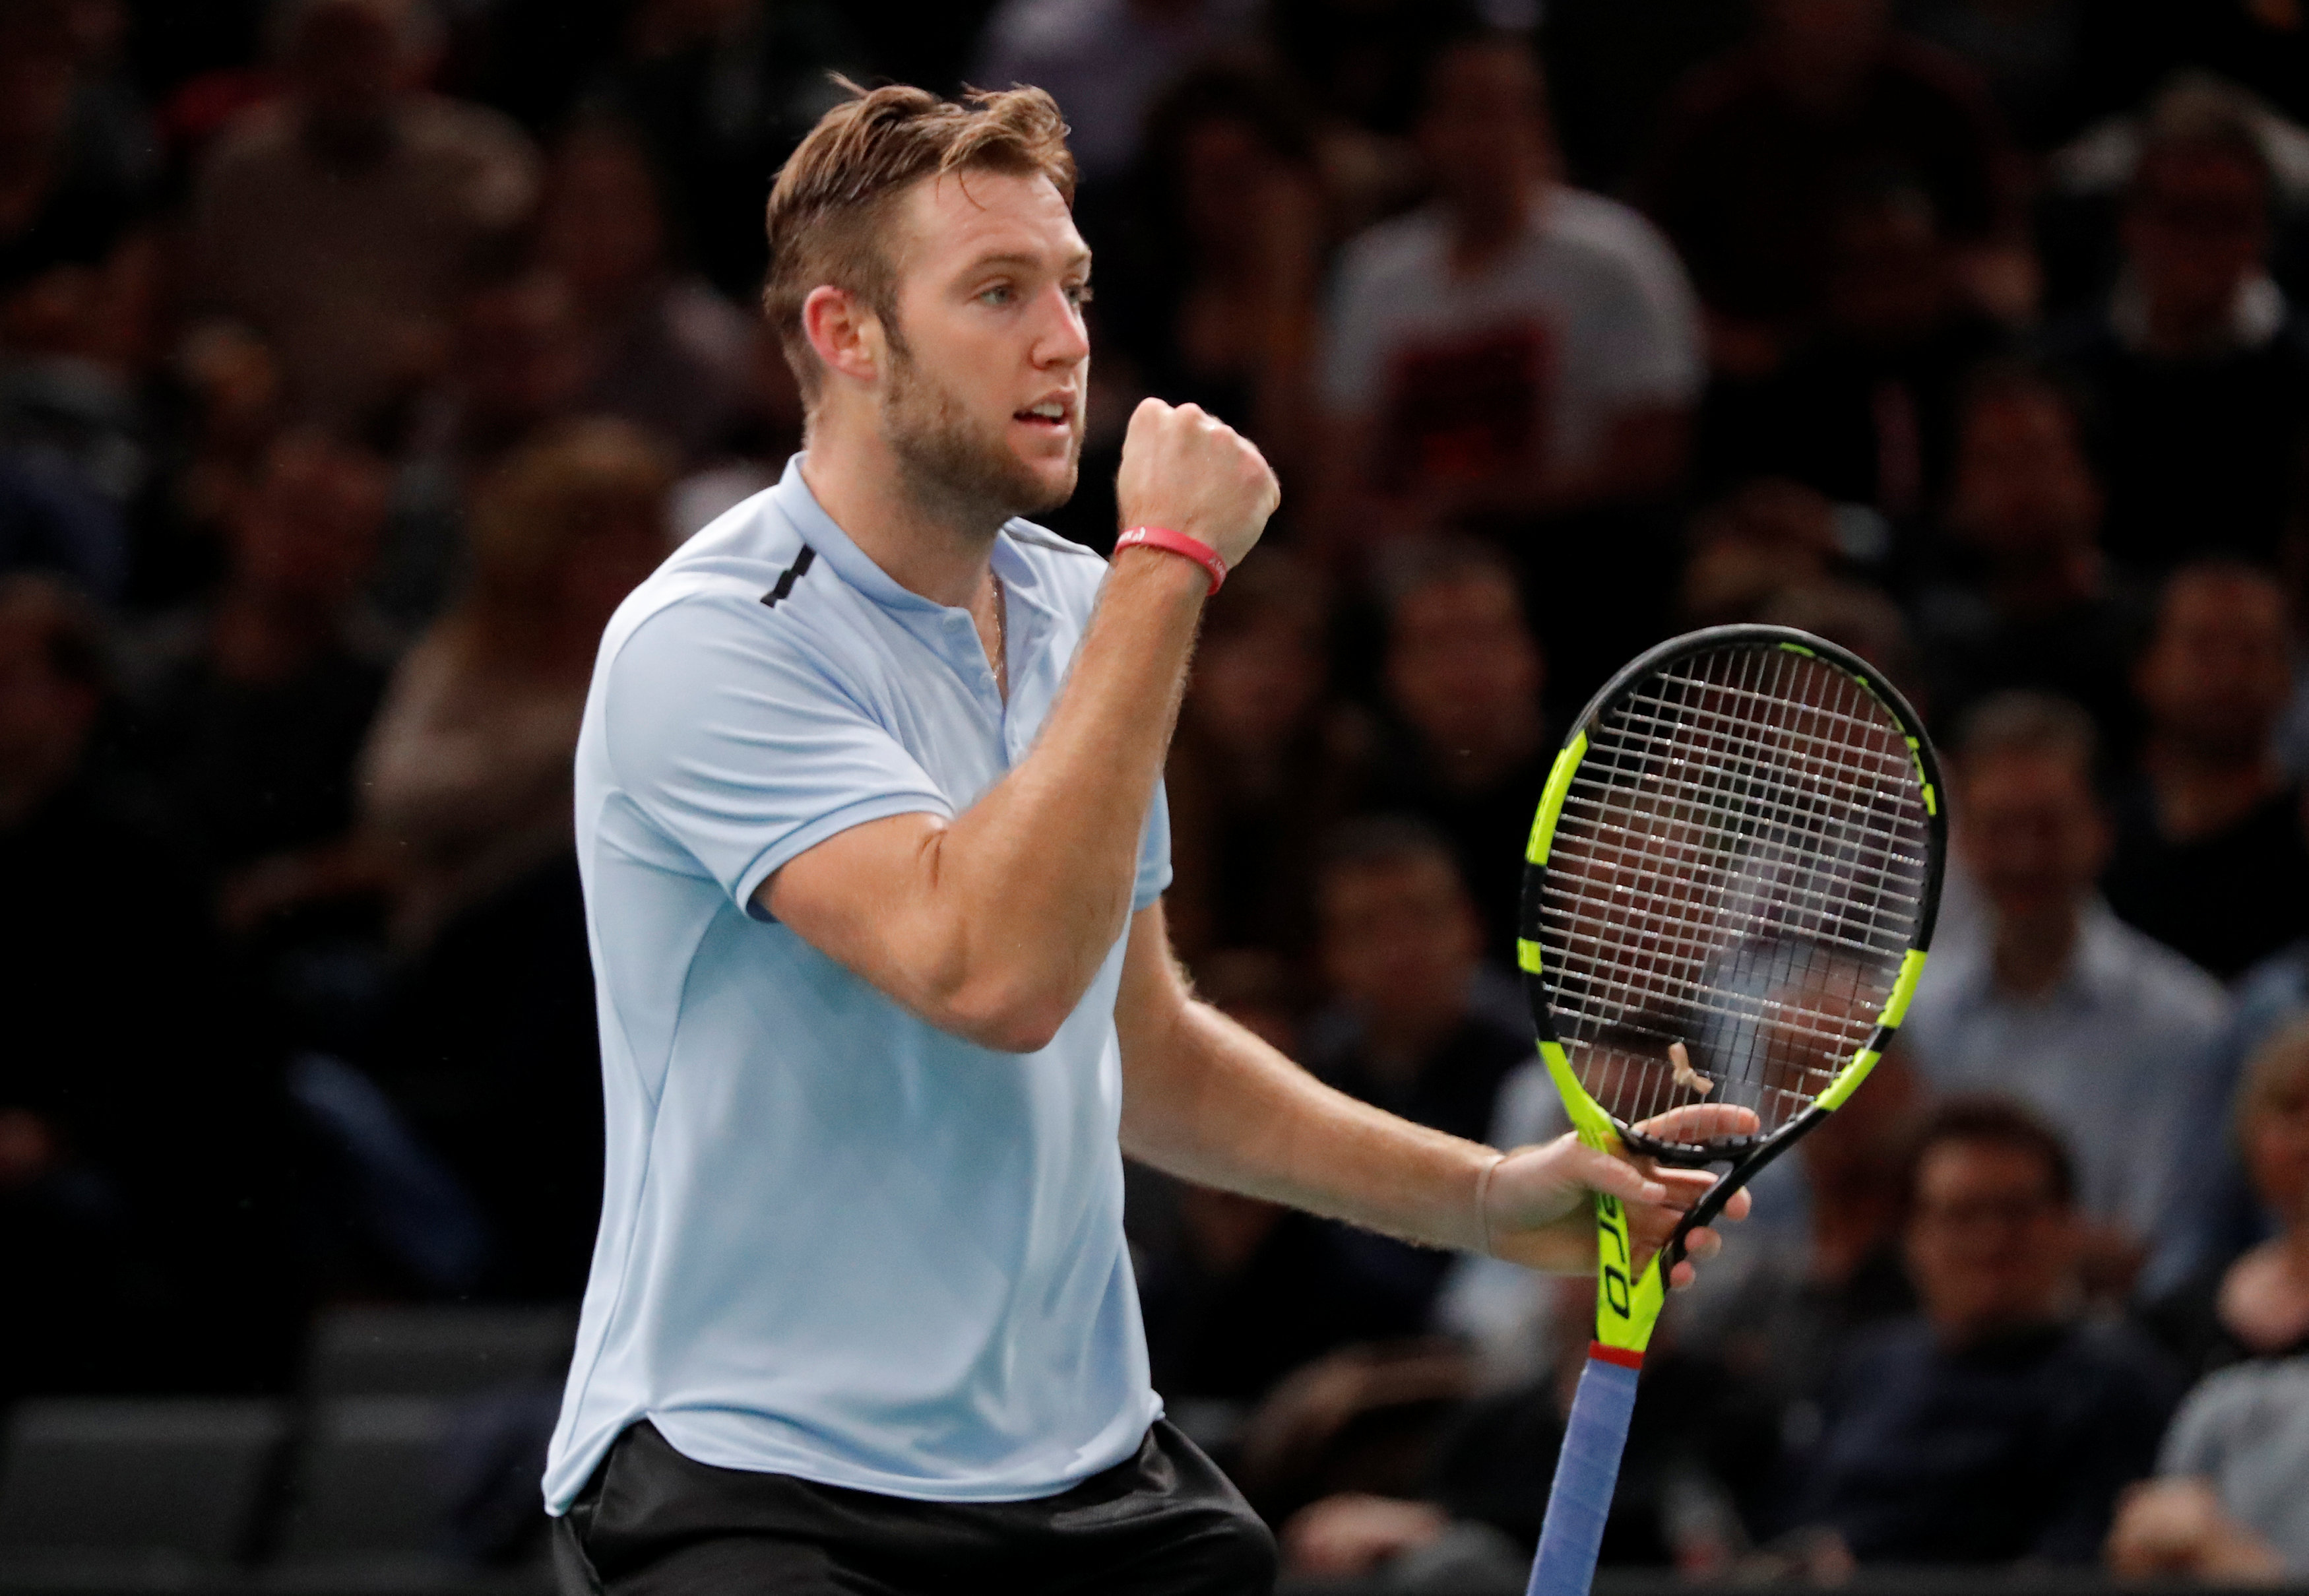 Tennis: Jack Sock on the brink of ATP Tour finals with Paris win